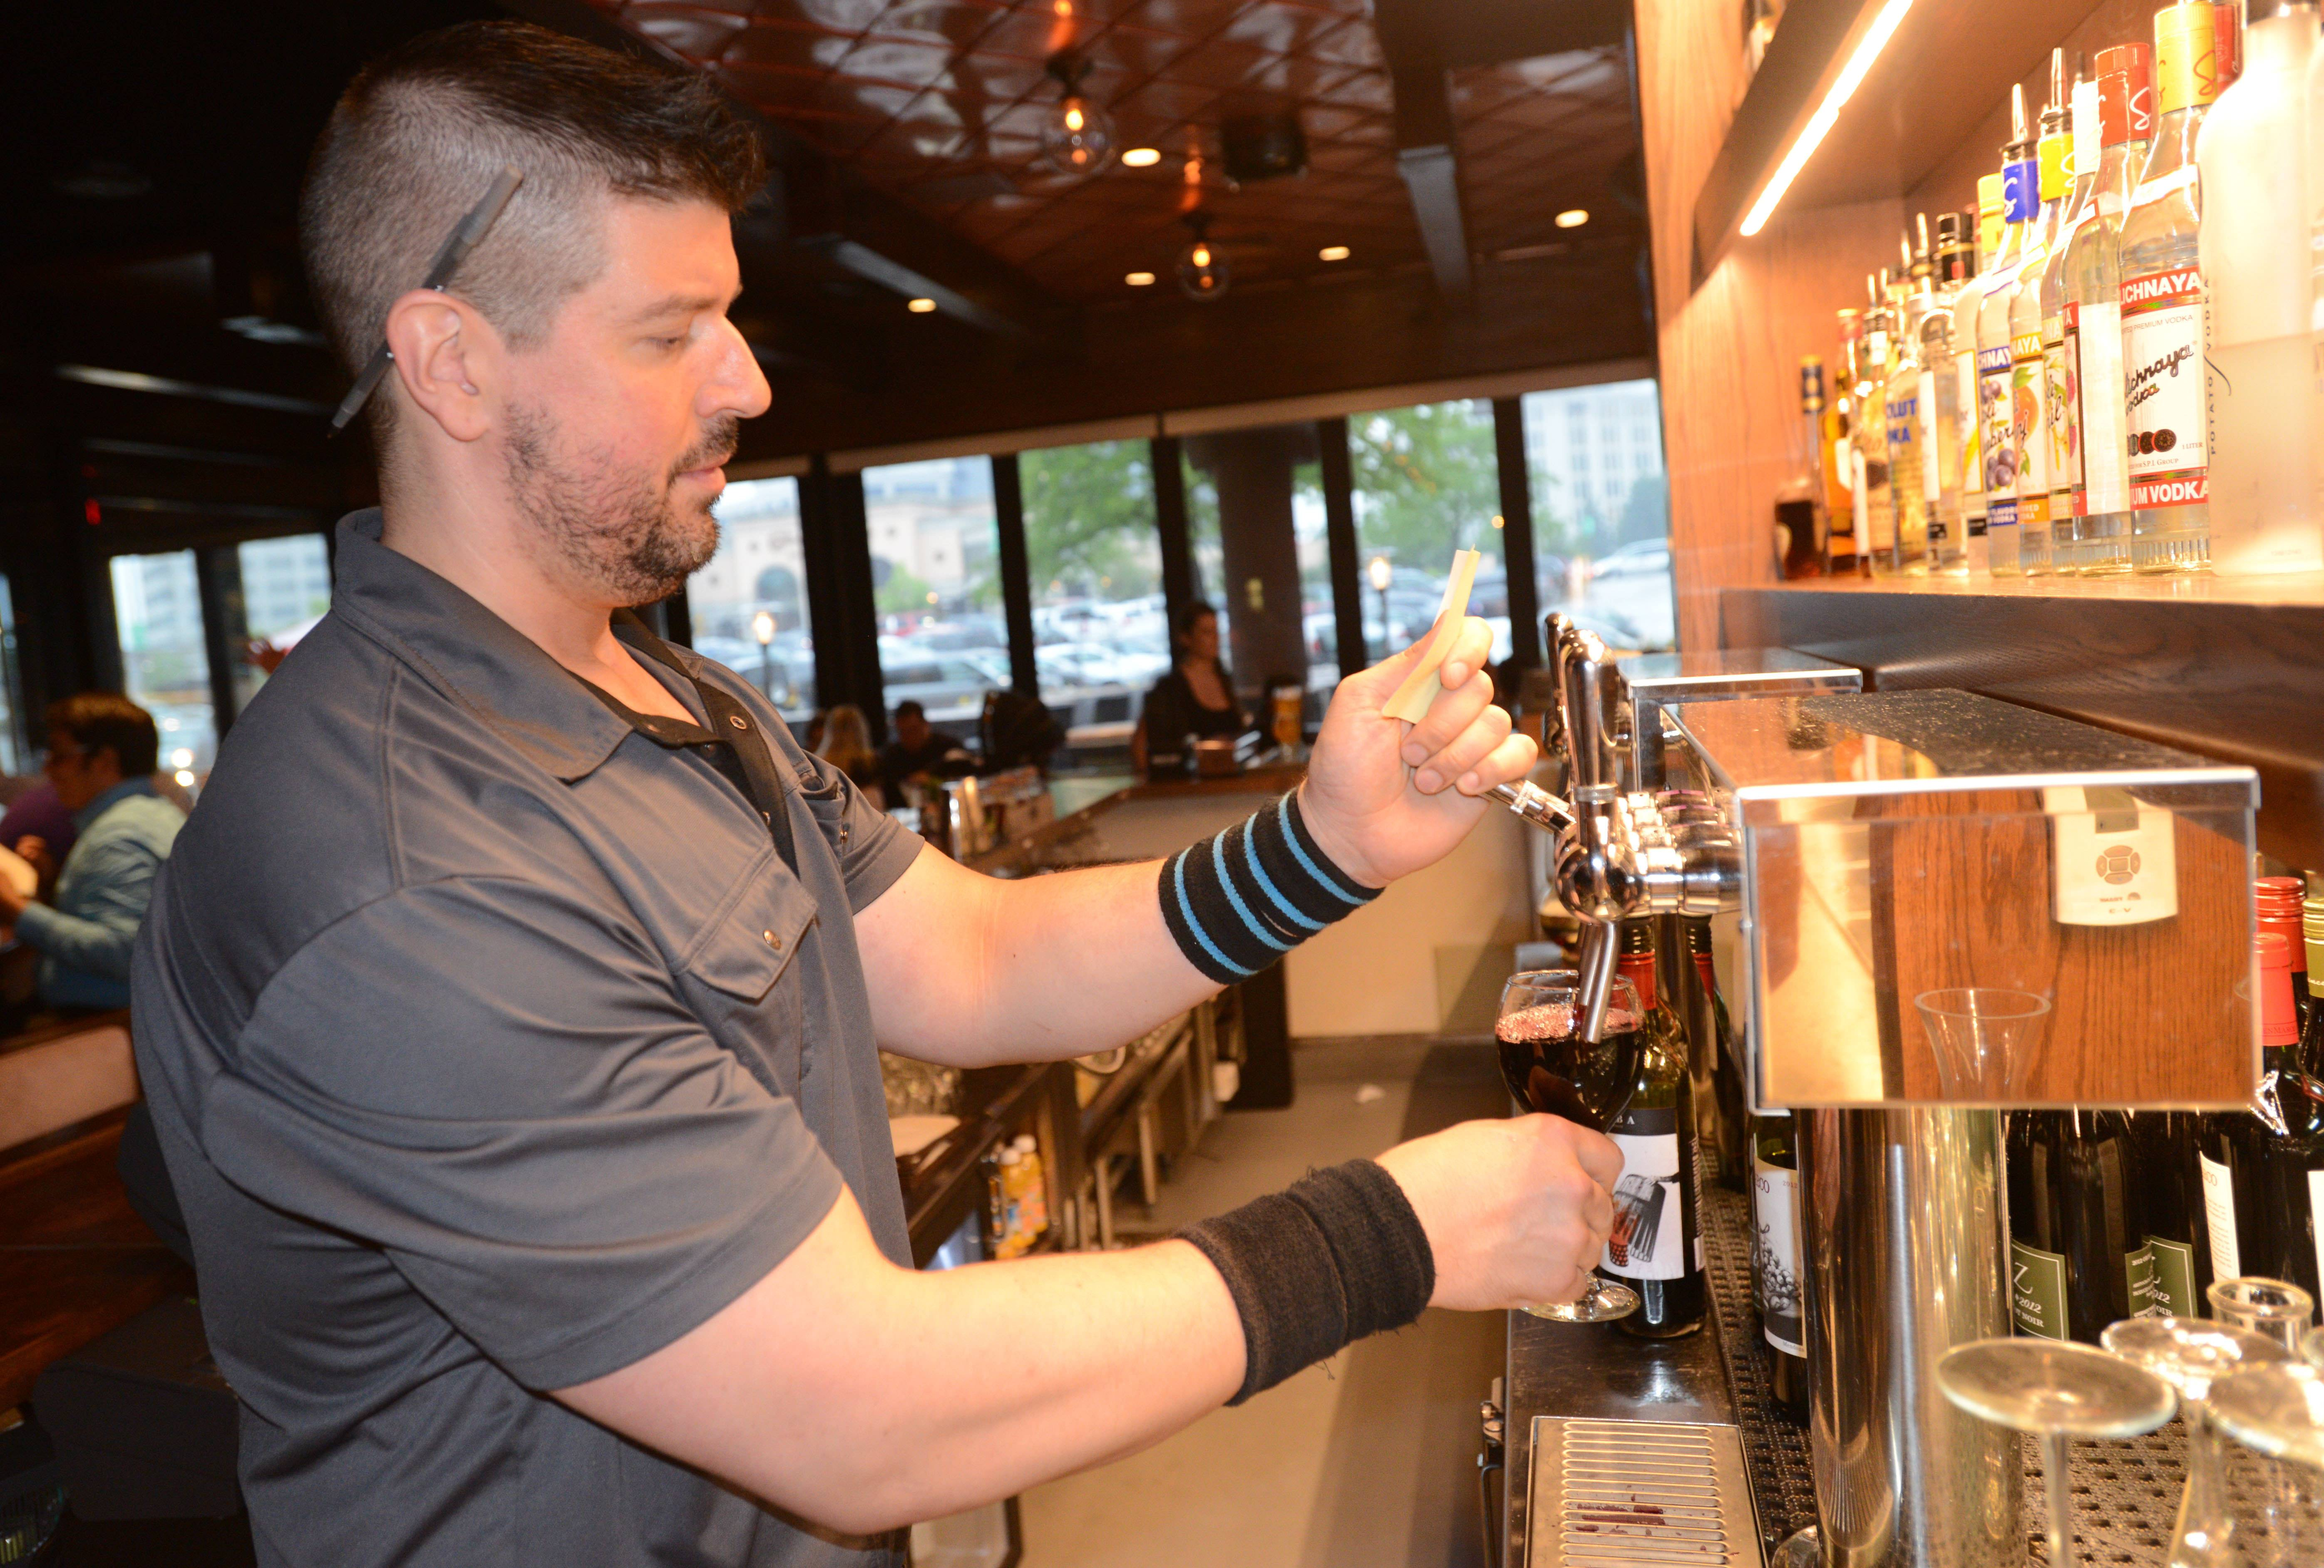 Justin Brown pours some wine at the Old Town Pour House in Oak Brook.